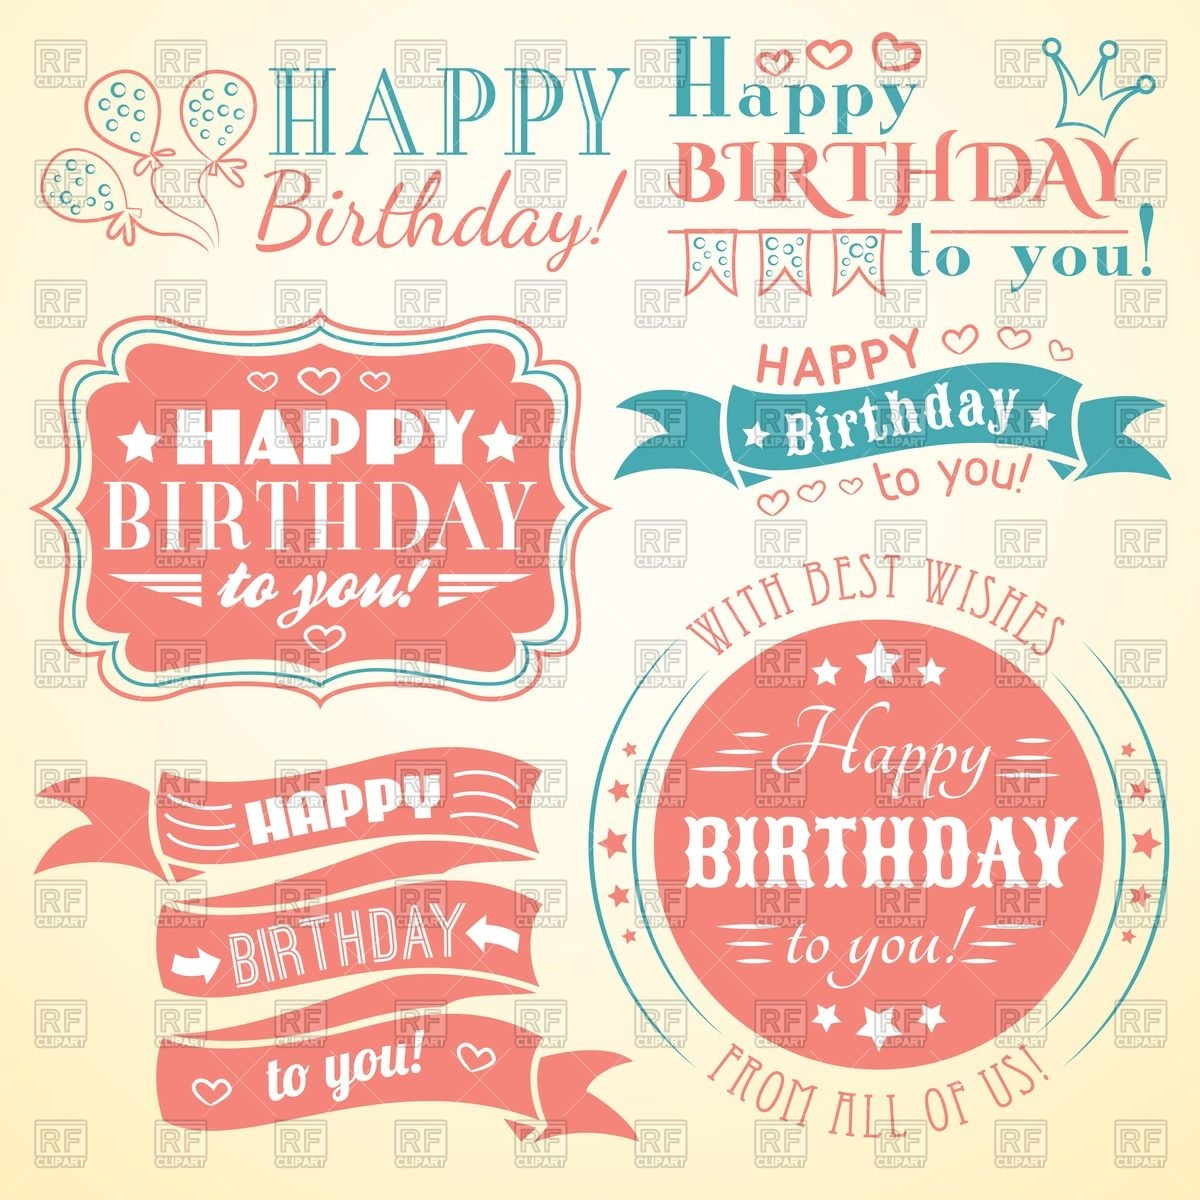 happy birthday sticker template ; f2644128b1baa0f60193a8d254b65fee